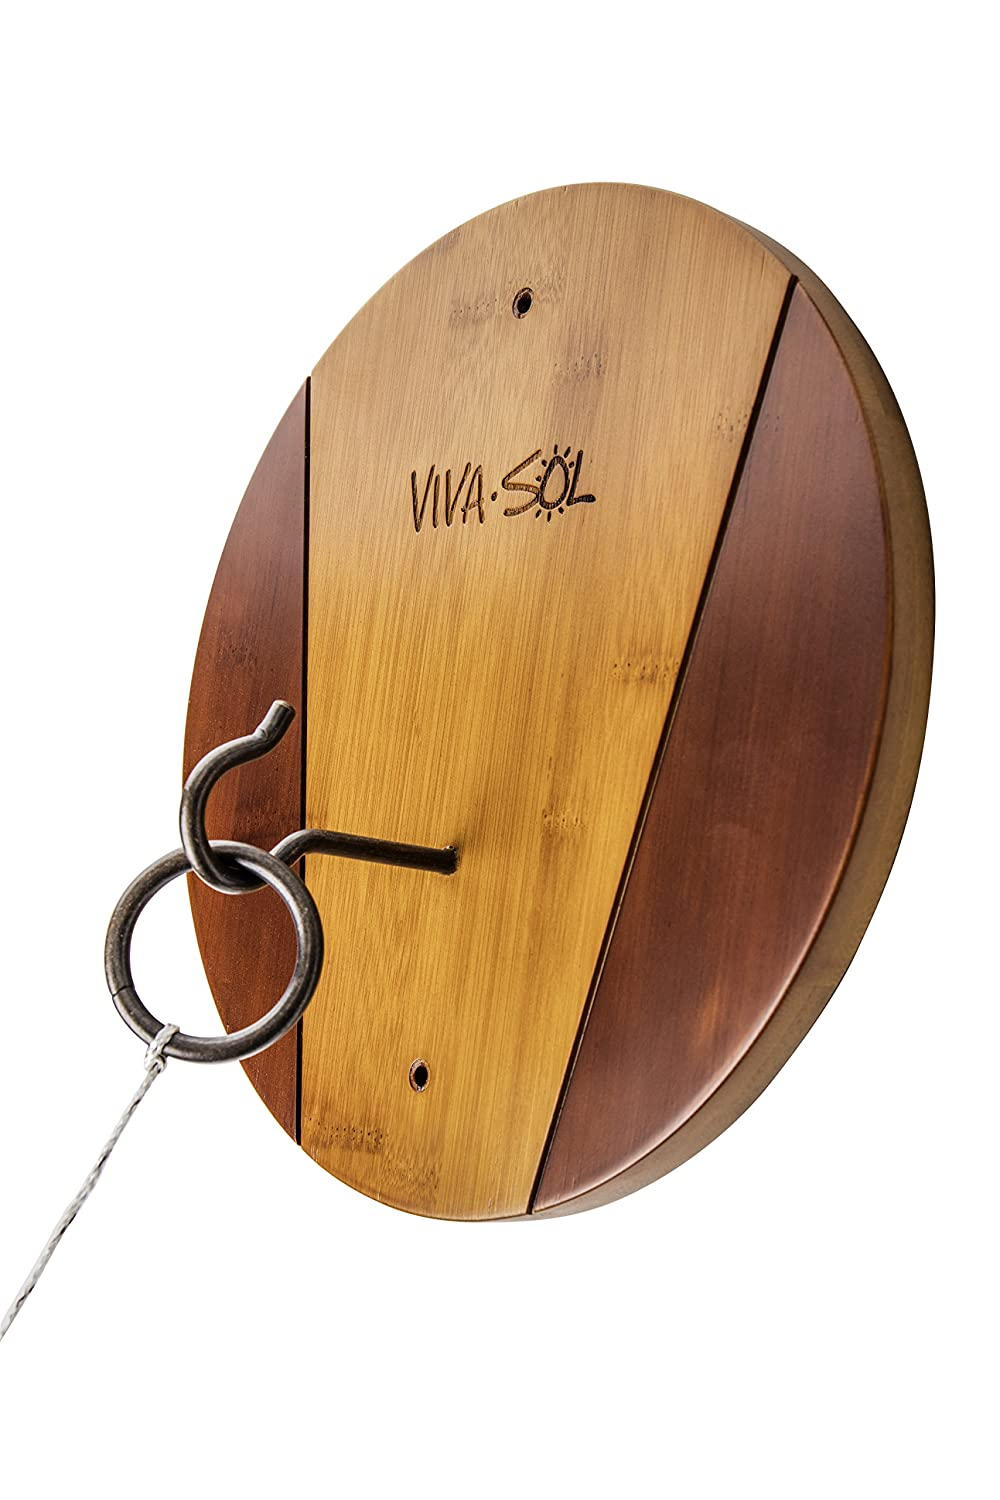 Viva Sol Premium All-Wood Walnut Finish Hook and Ring Target Game for Use Indoors and Outdoors